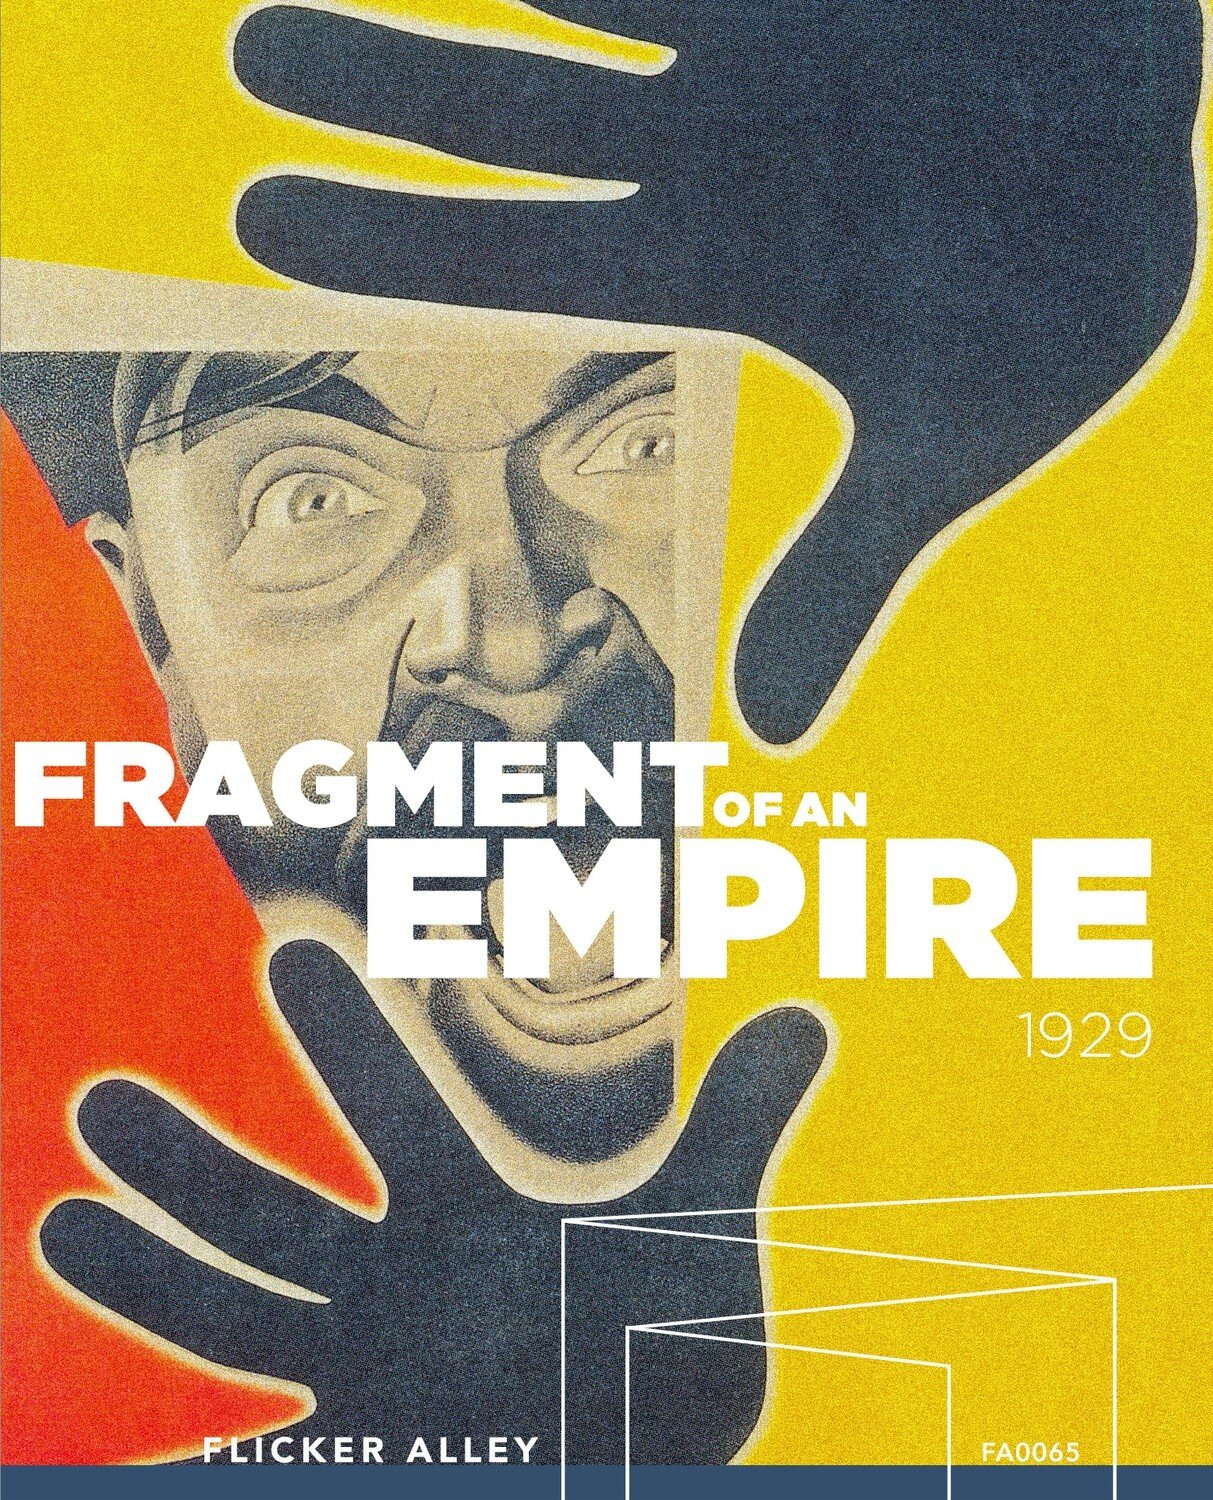 FRAGMENTS OF AN EMPIRE COVER.jpg